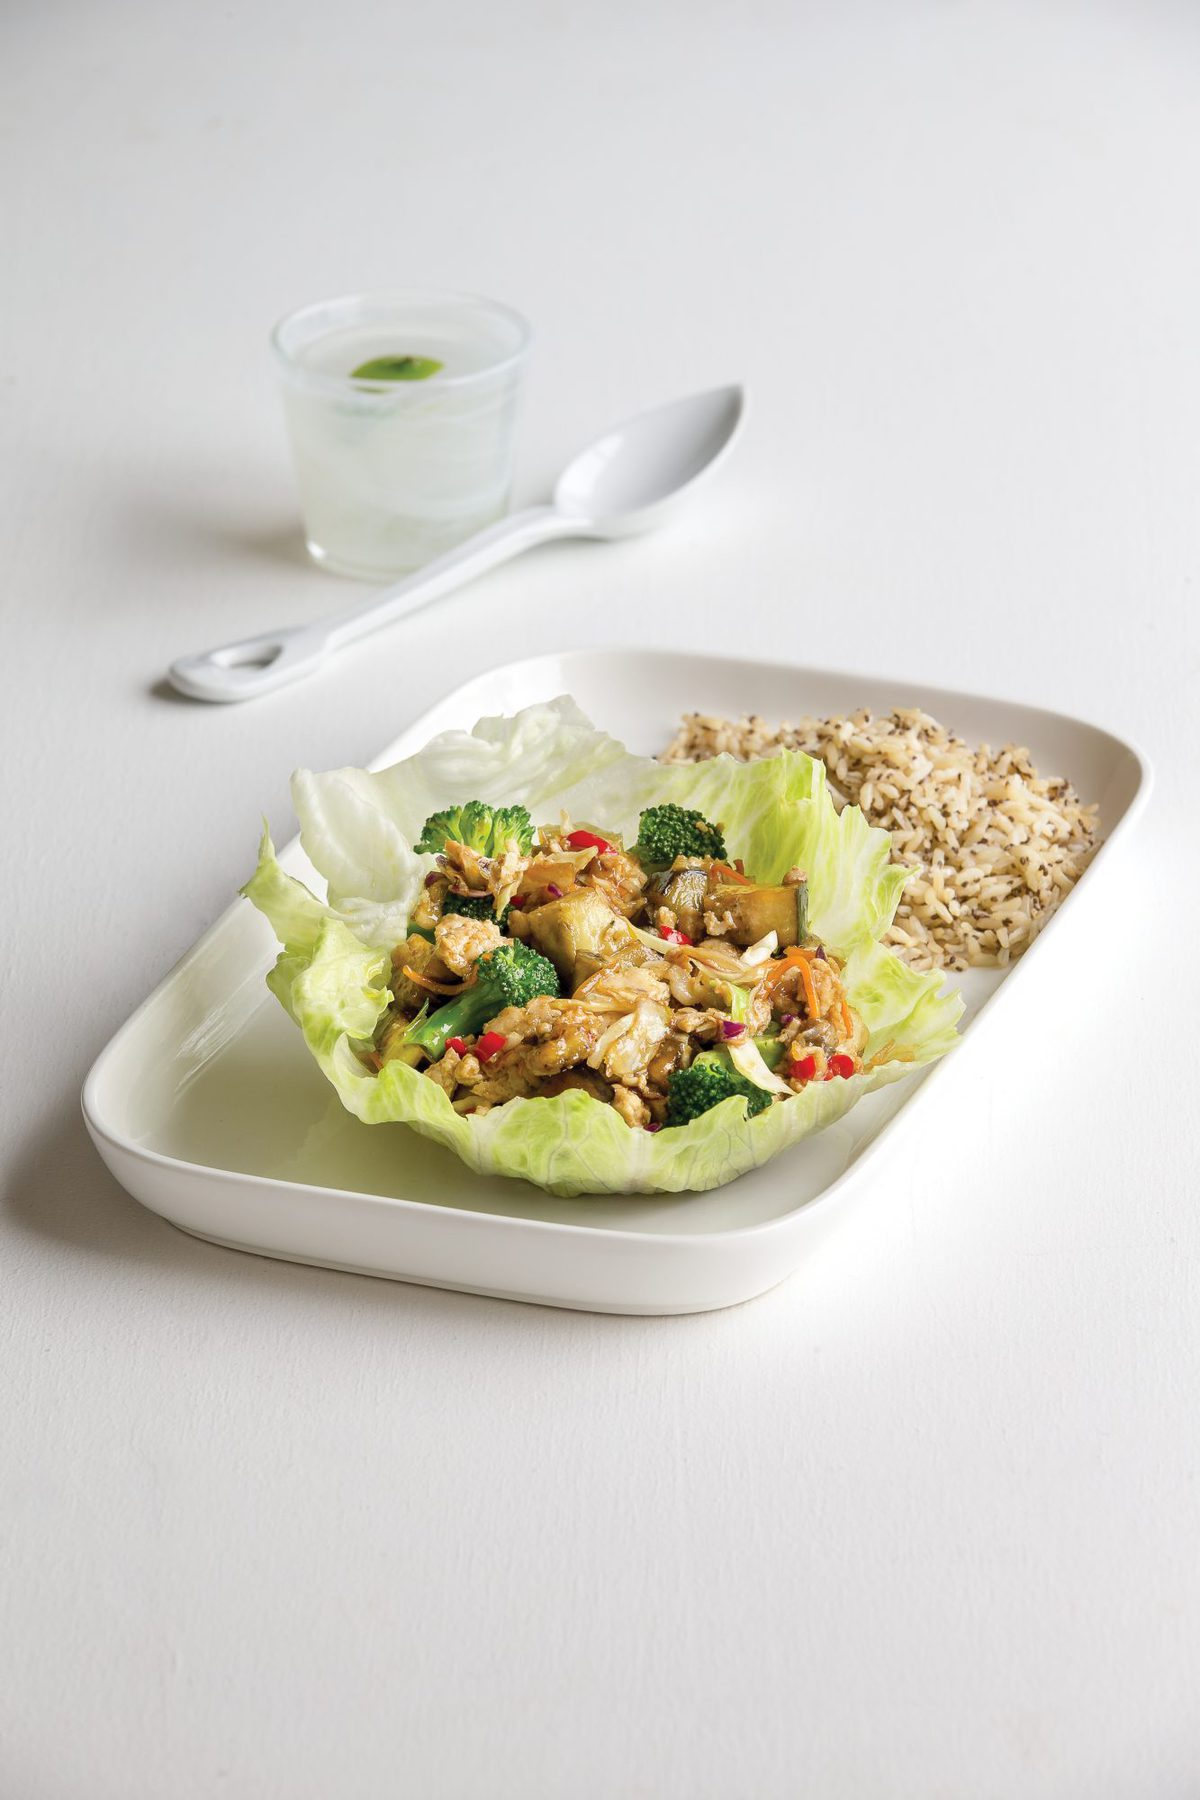 Spicy chicken and eggplant in lettuce cups